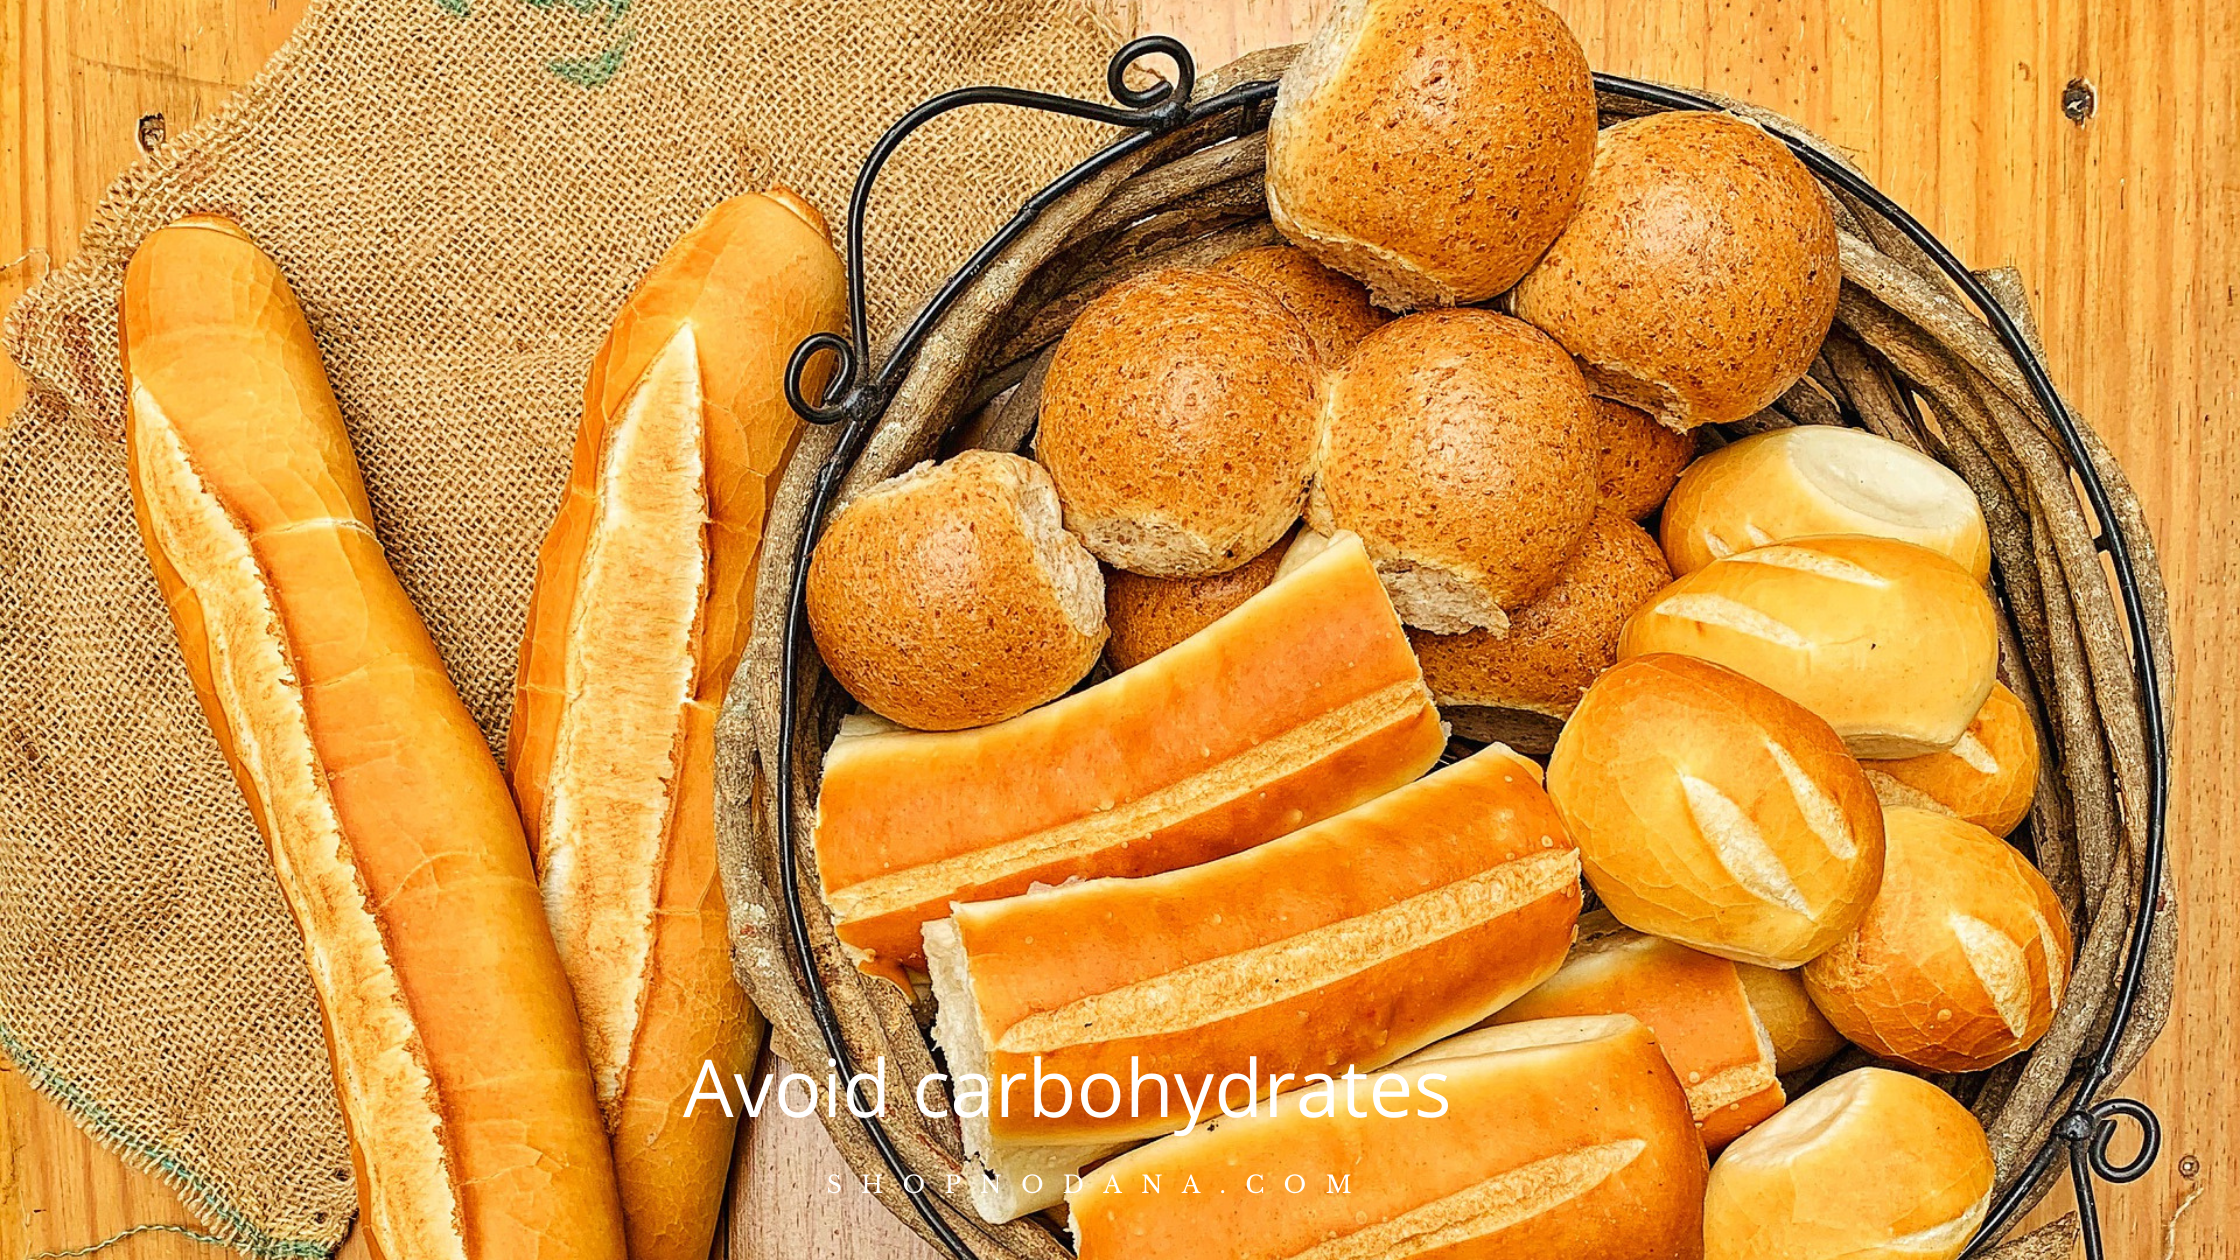 Avoid carbohydrates to lose lower belly fat